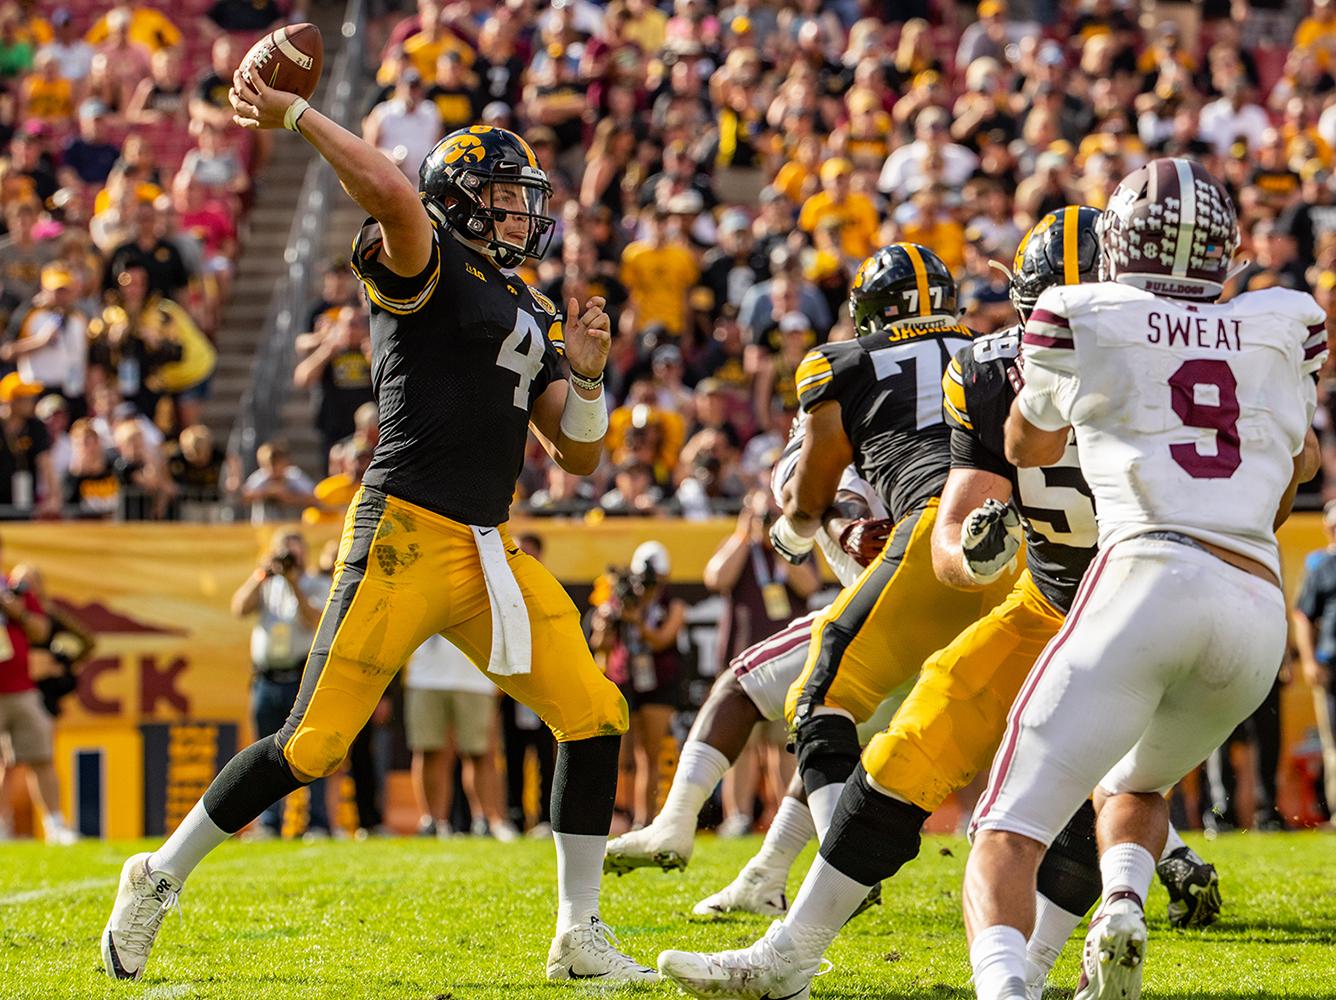 Iowa quarterback Nate Stanley throws a pass during the Outback Bowl game between Iowa and Mississippi State at Raymond James Stadium in Tampa, Florida on Tuesday, January 1, 2019. The Hawkeyes defeated the Bulldogs 27-22.